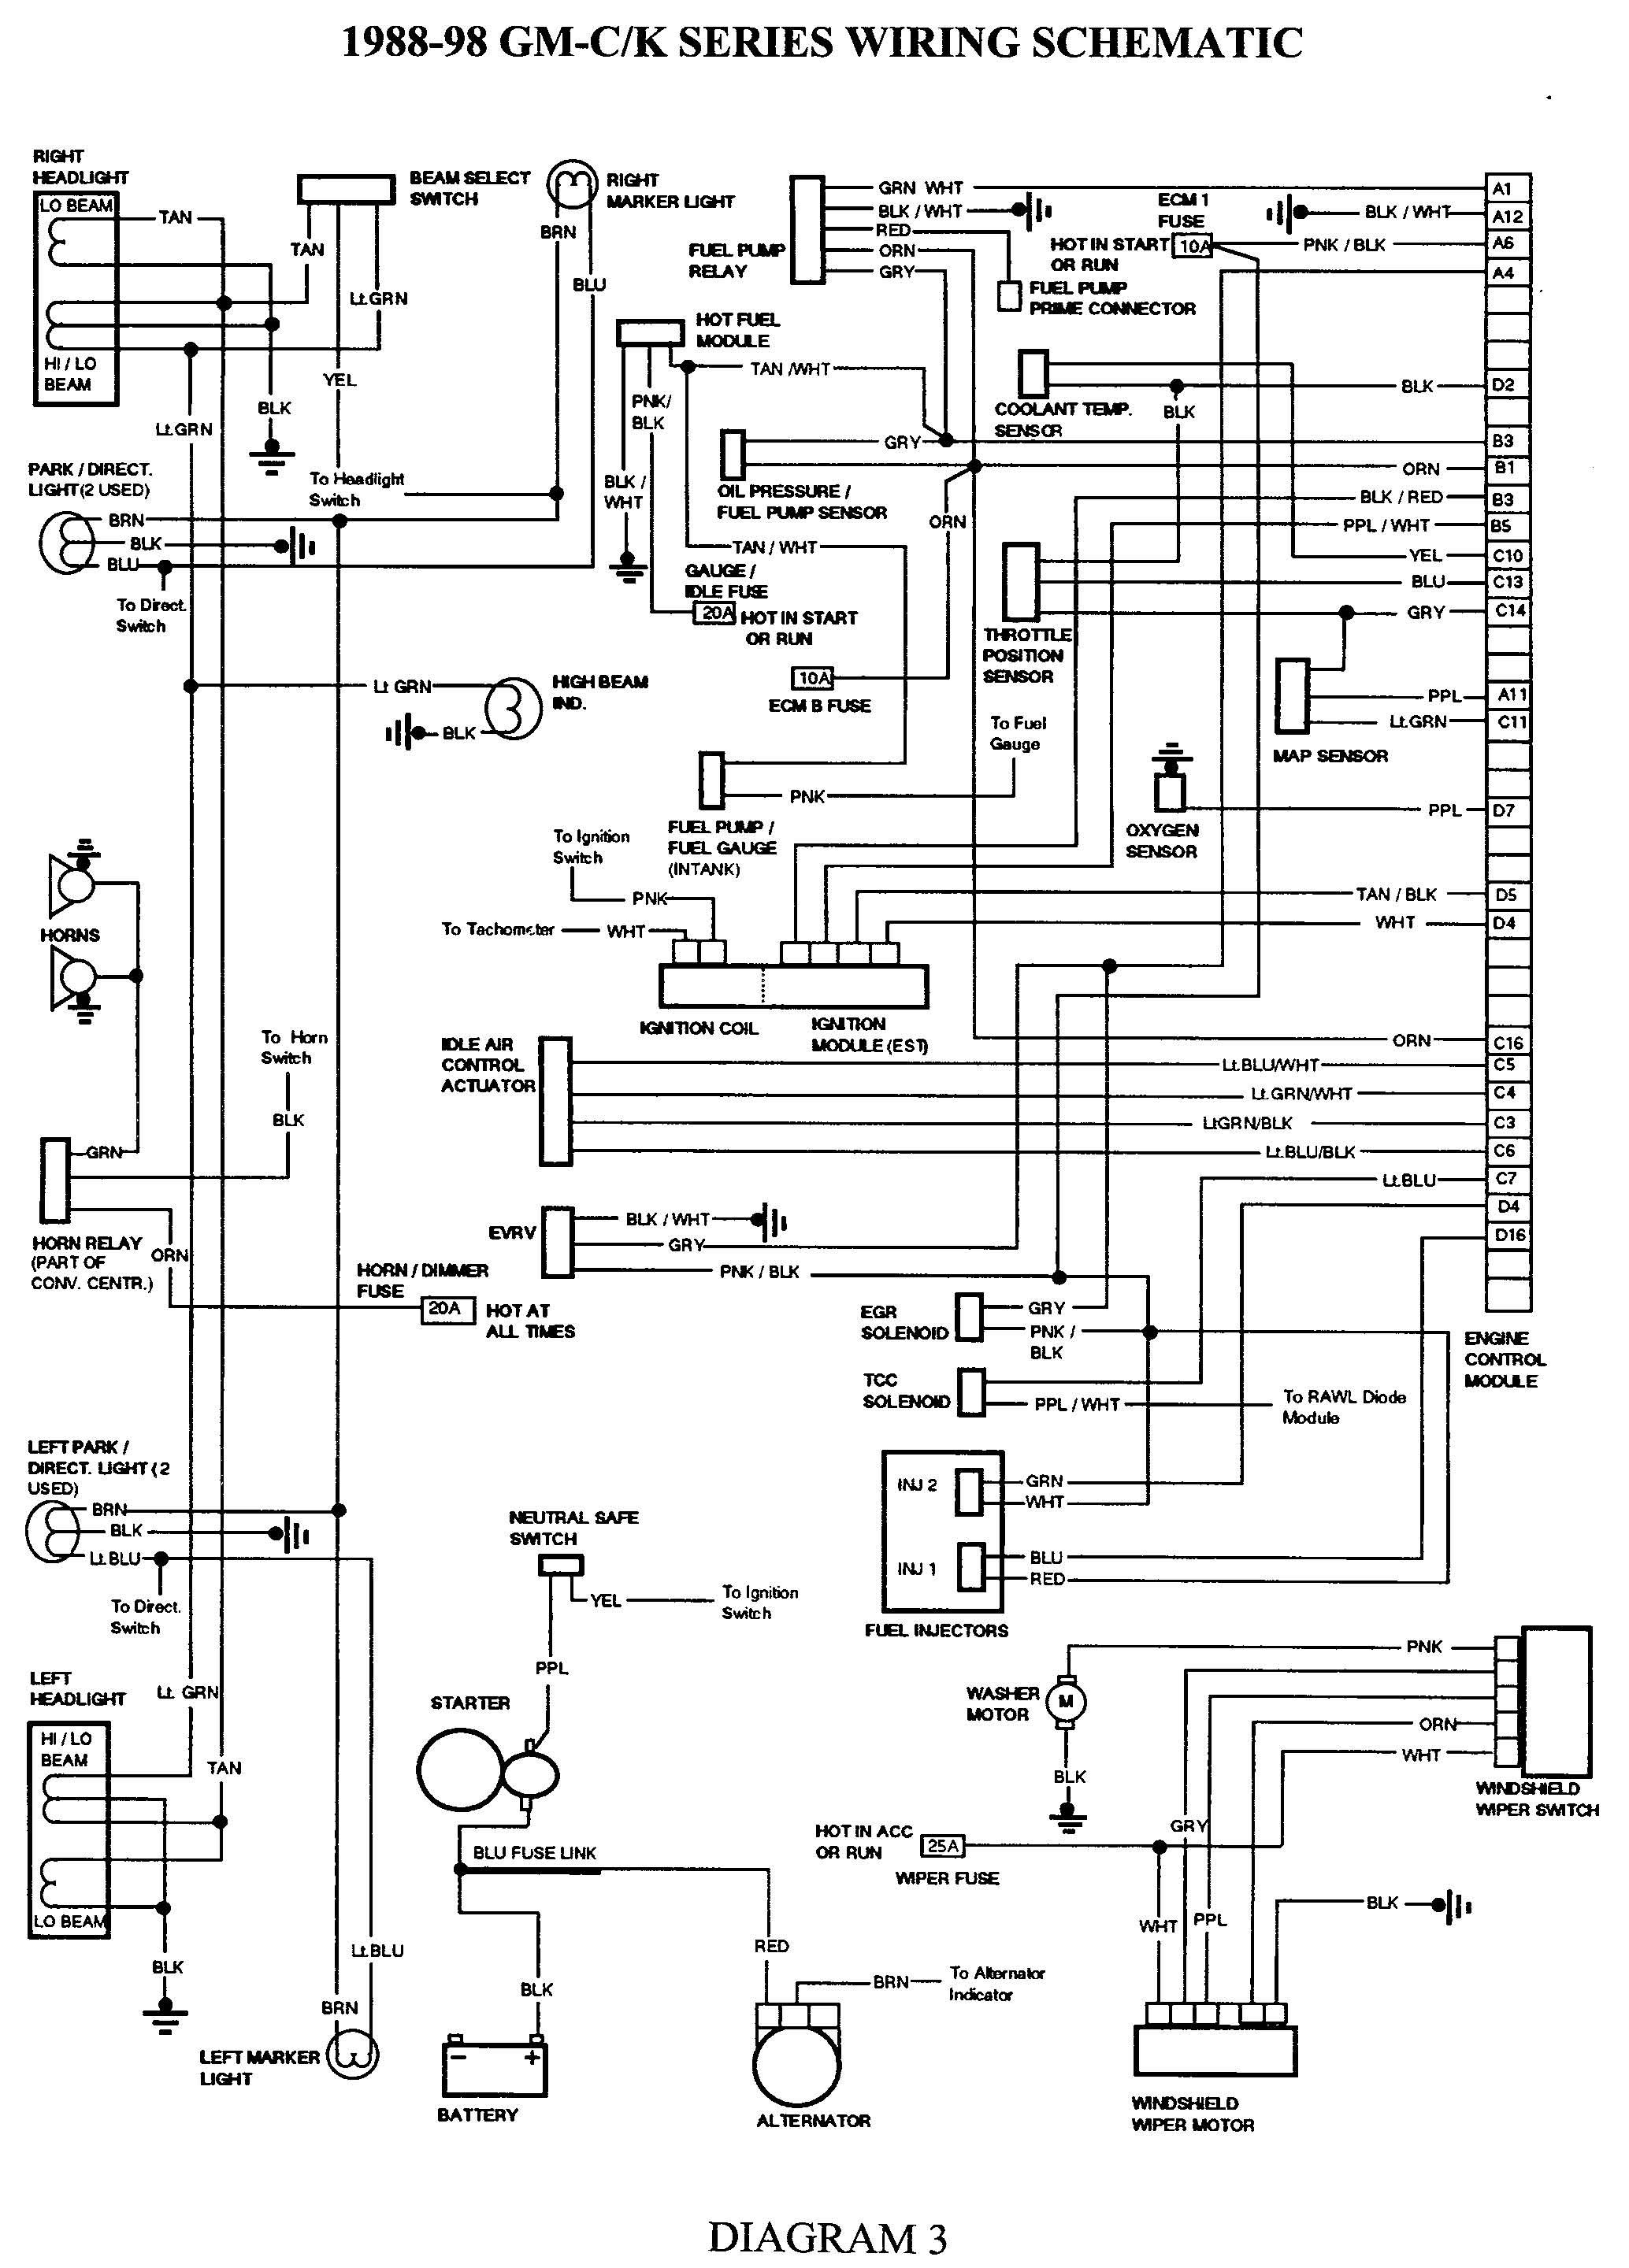 1989 gmc truck wiring diagram wiring diagrams search 2011 GMC Sierra Radio Wiring Diagram